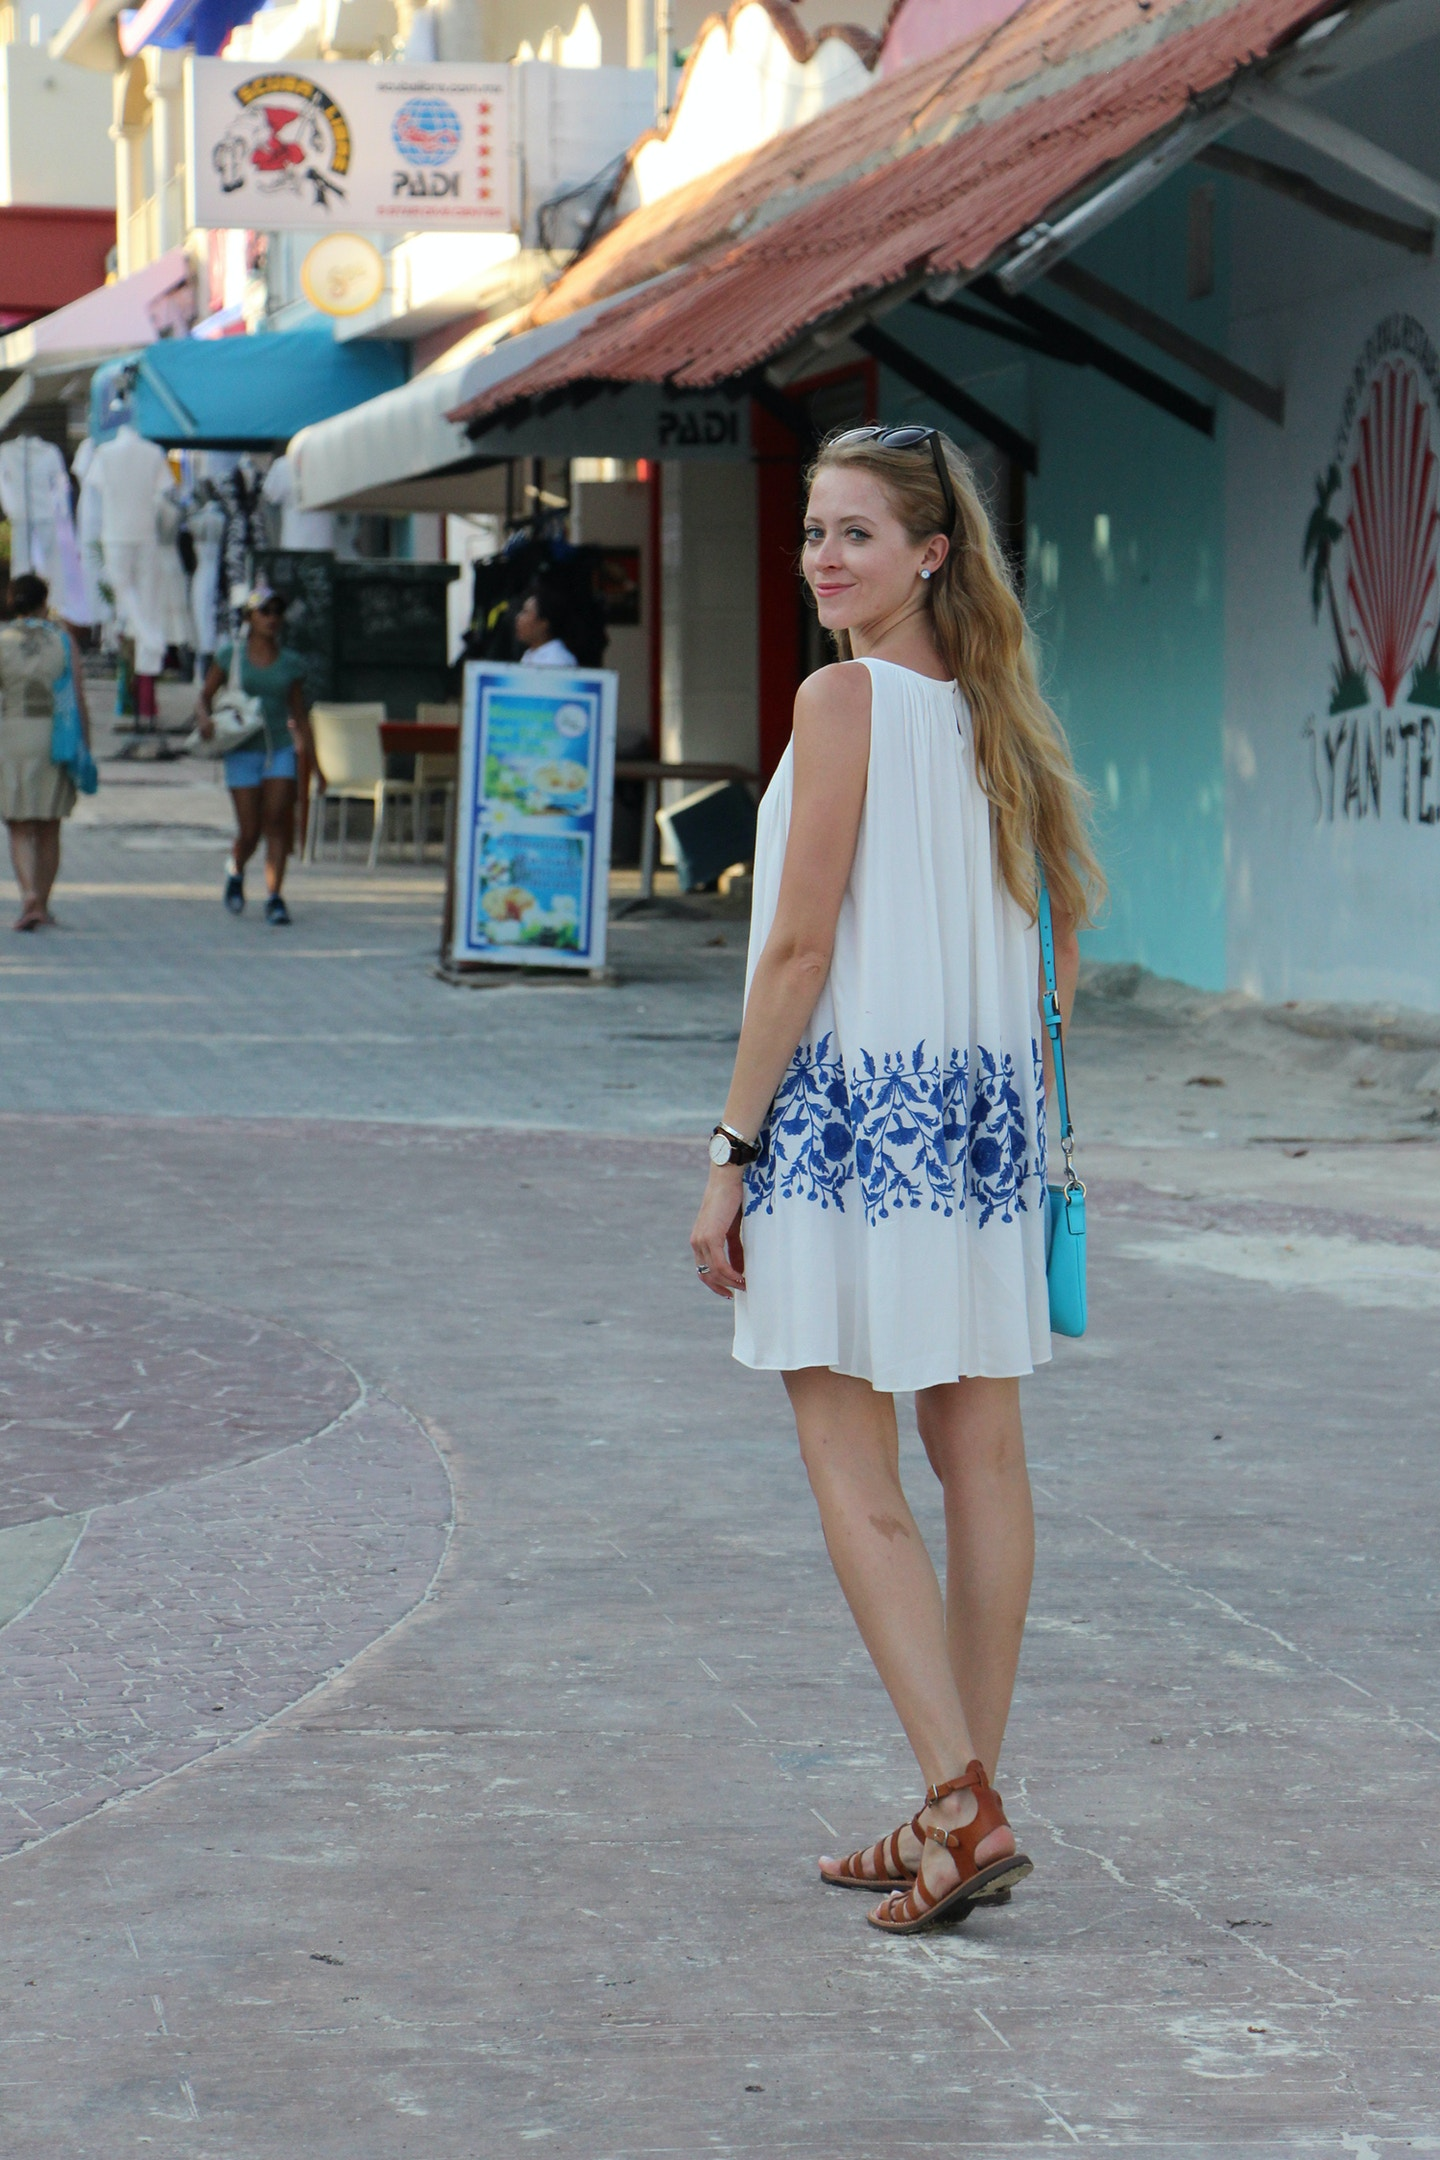 Shopping in Playa del Carmen